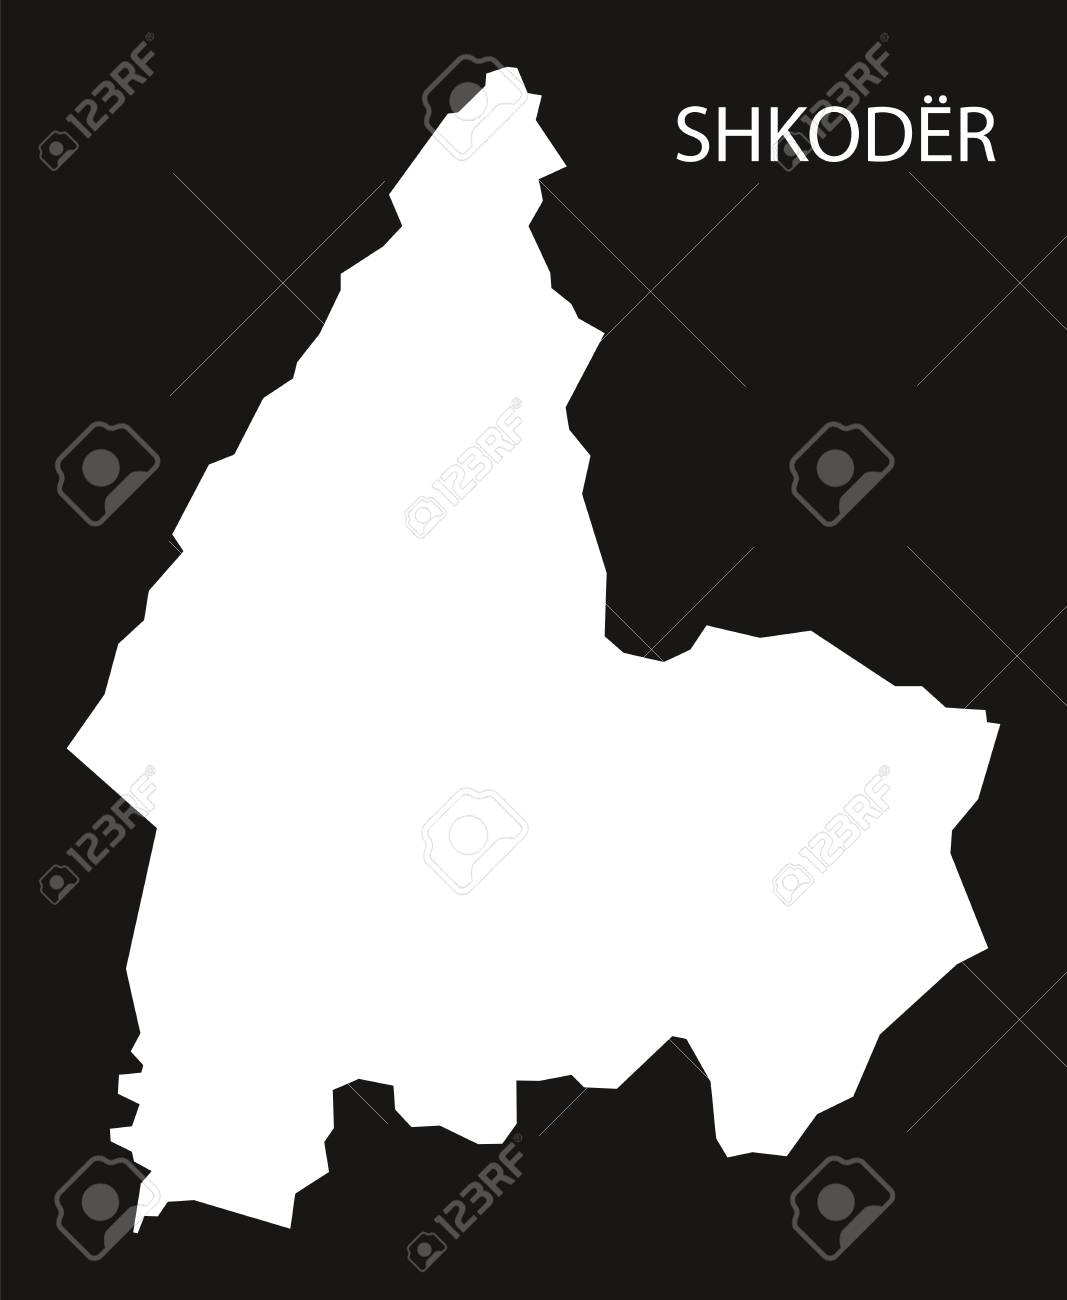 Shkoder Albania Map Black Inverted Silhouette Illustration Royalty